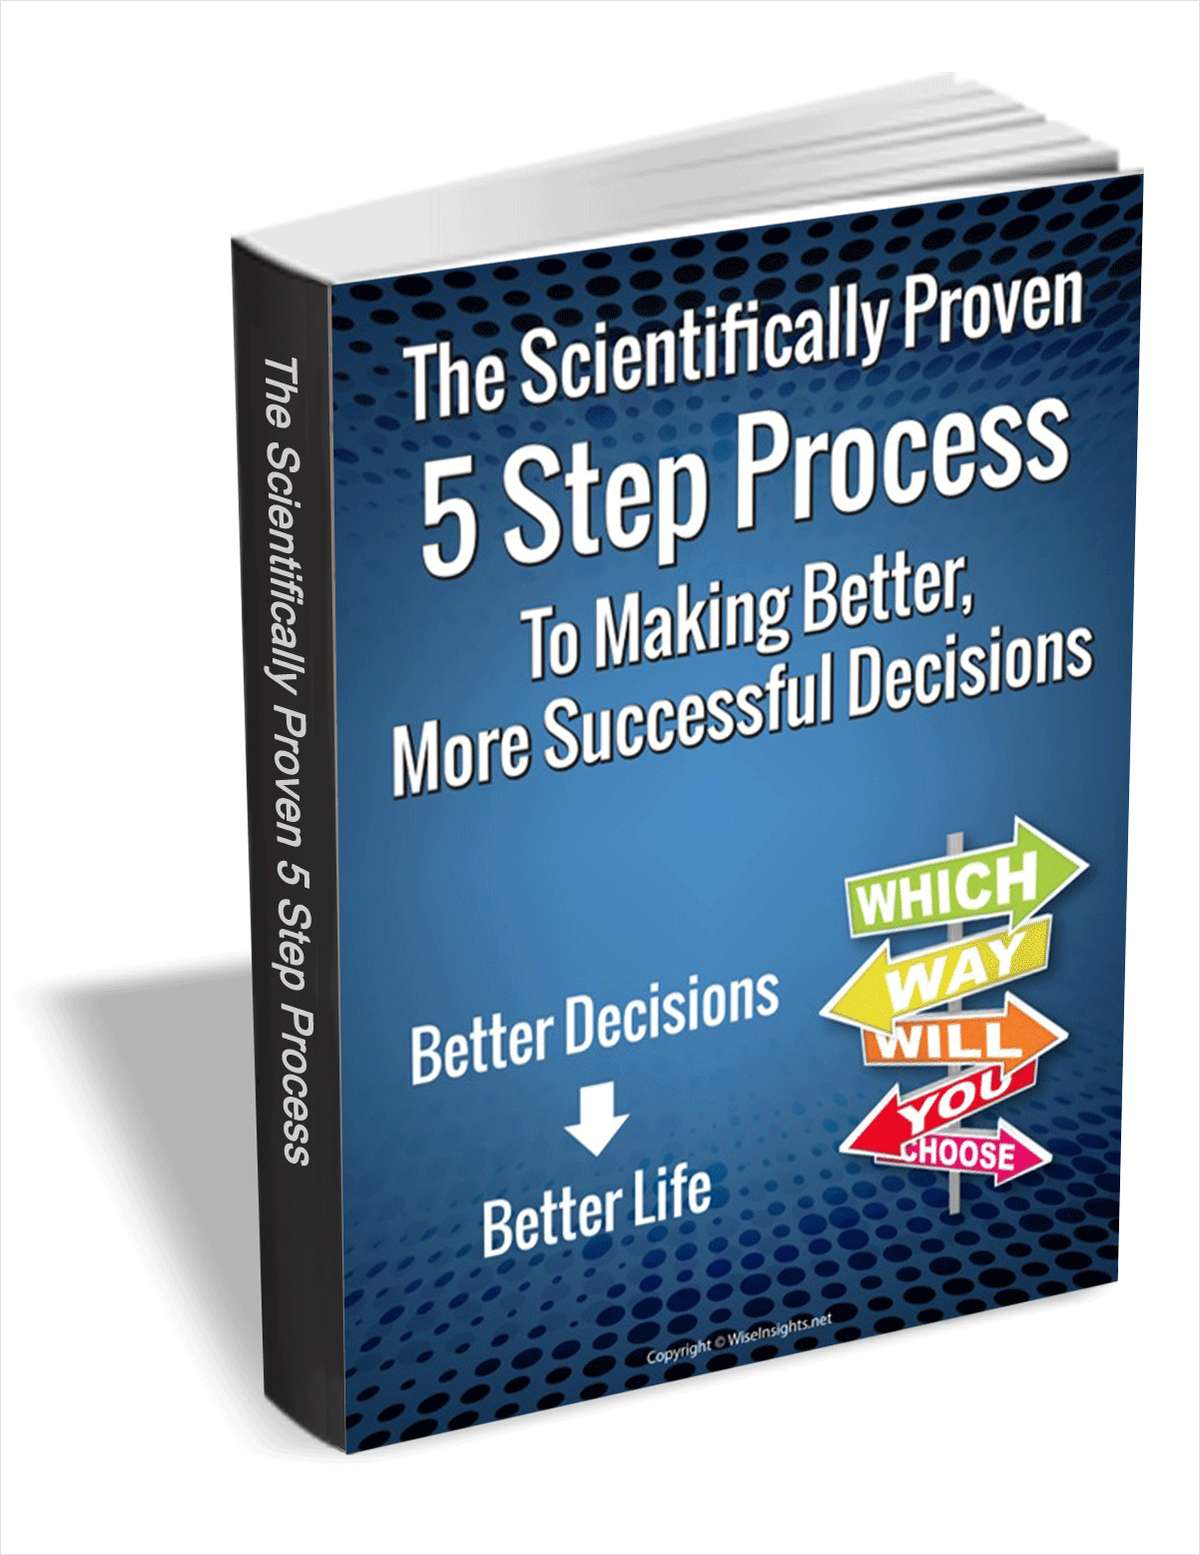 The Scientifically Proven 5 Step Process To Making Better, More Successful Decisions